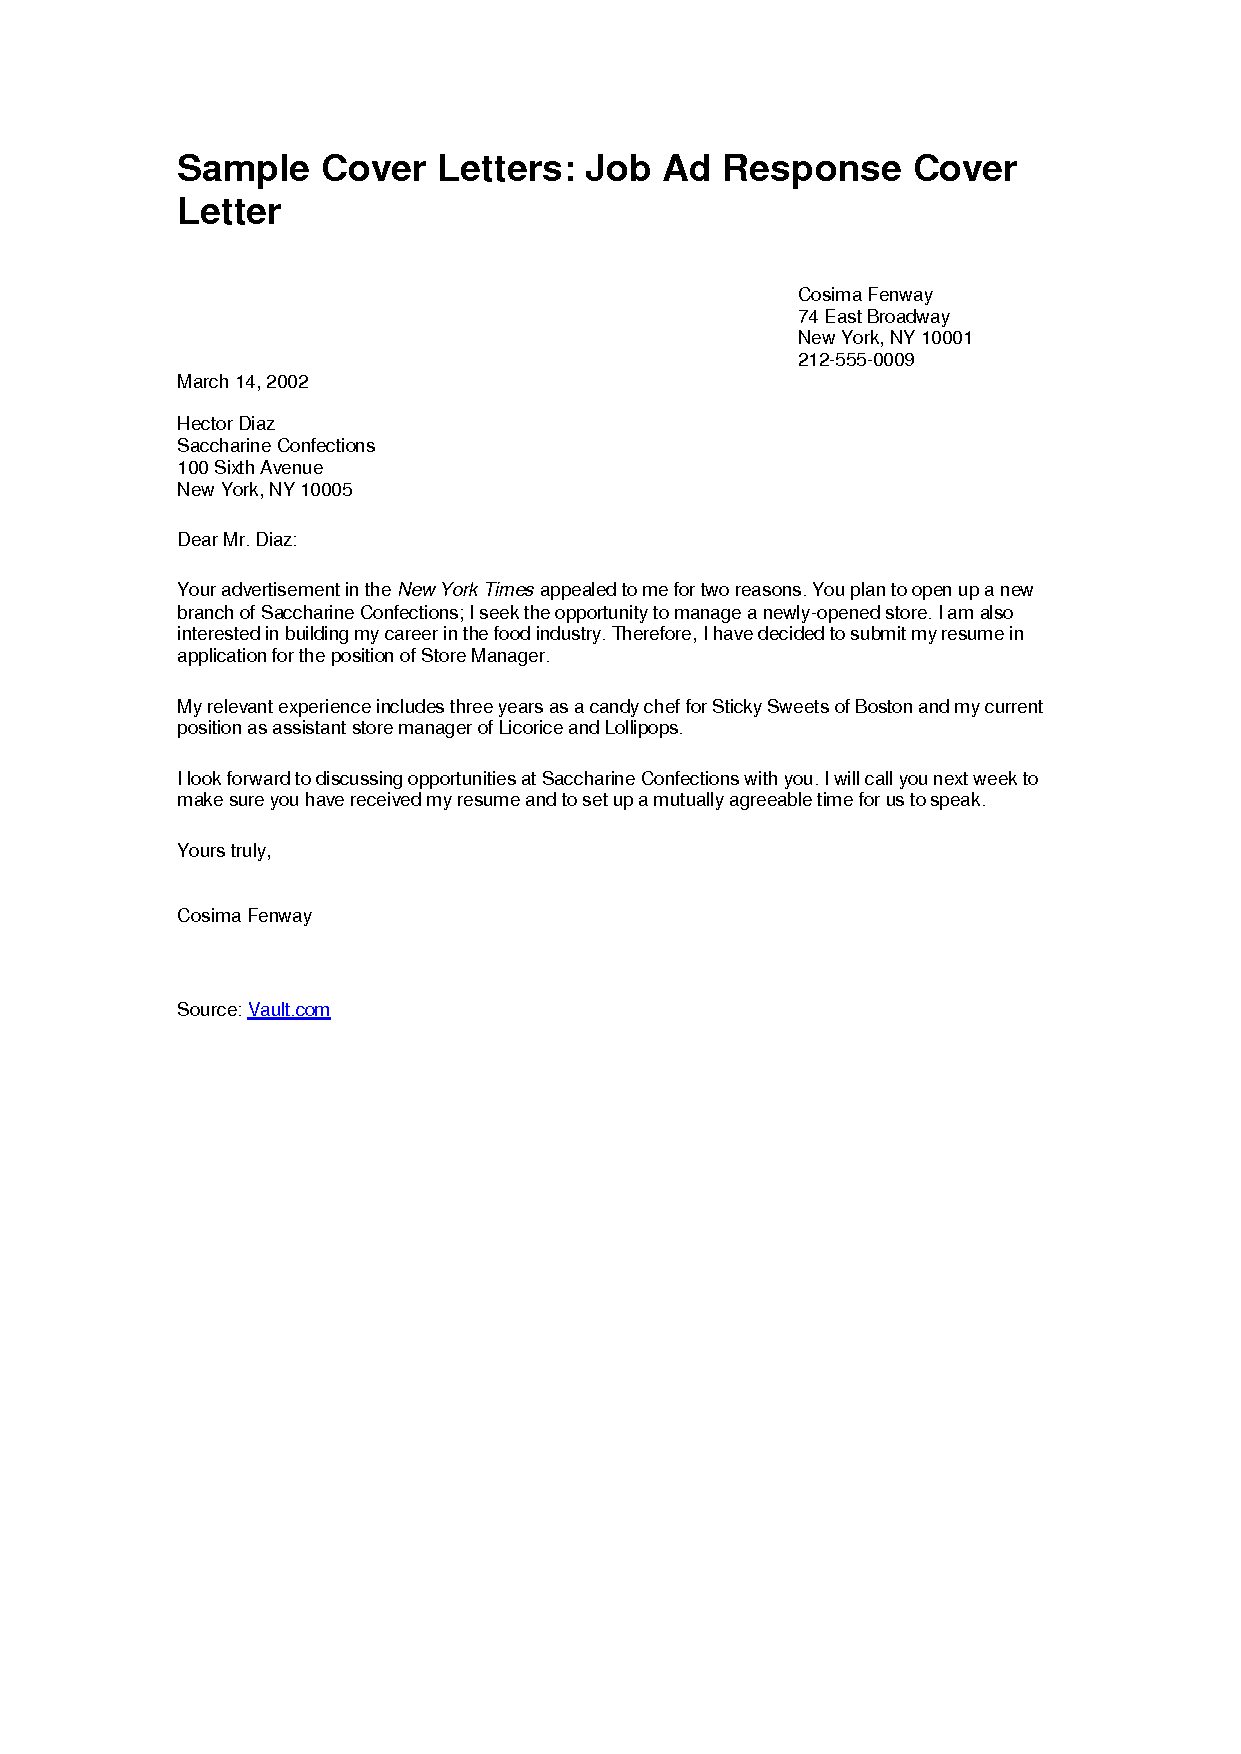 Sample Cover Letter Format for Job Application Obfuscata – Professional Cover Letters Examples